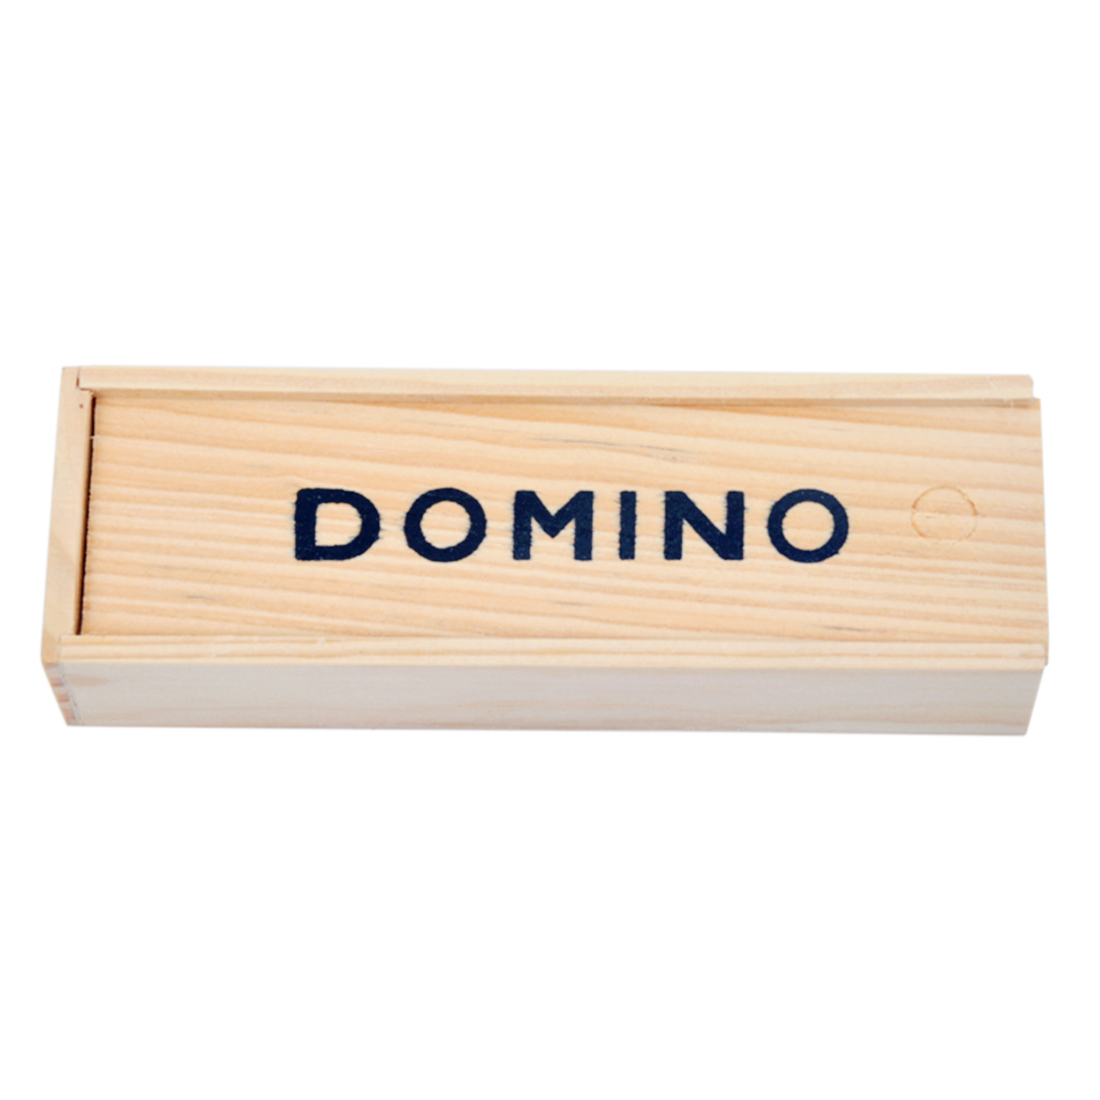 28Pcs Dominos Board Games Teaching Aids Educational Toys For Children With Wooden Box - Black